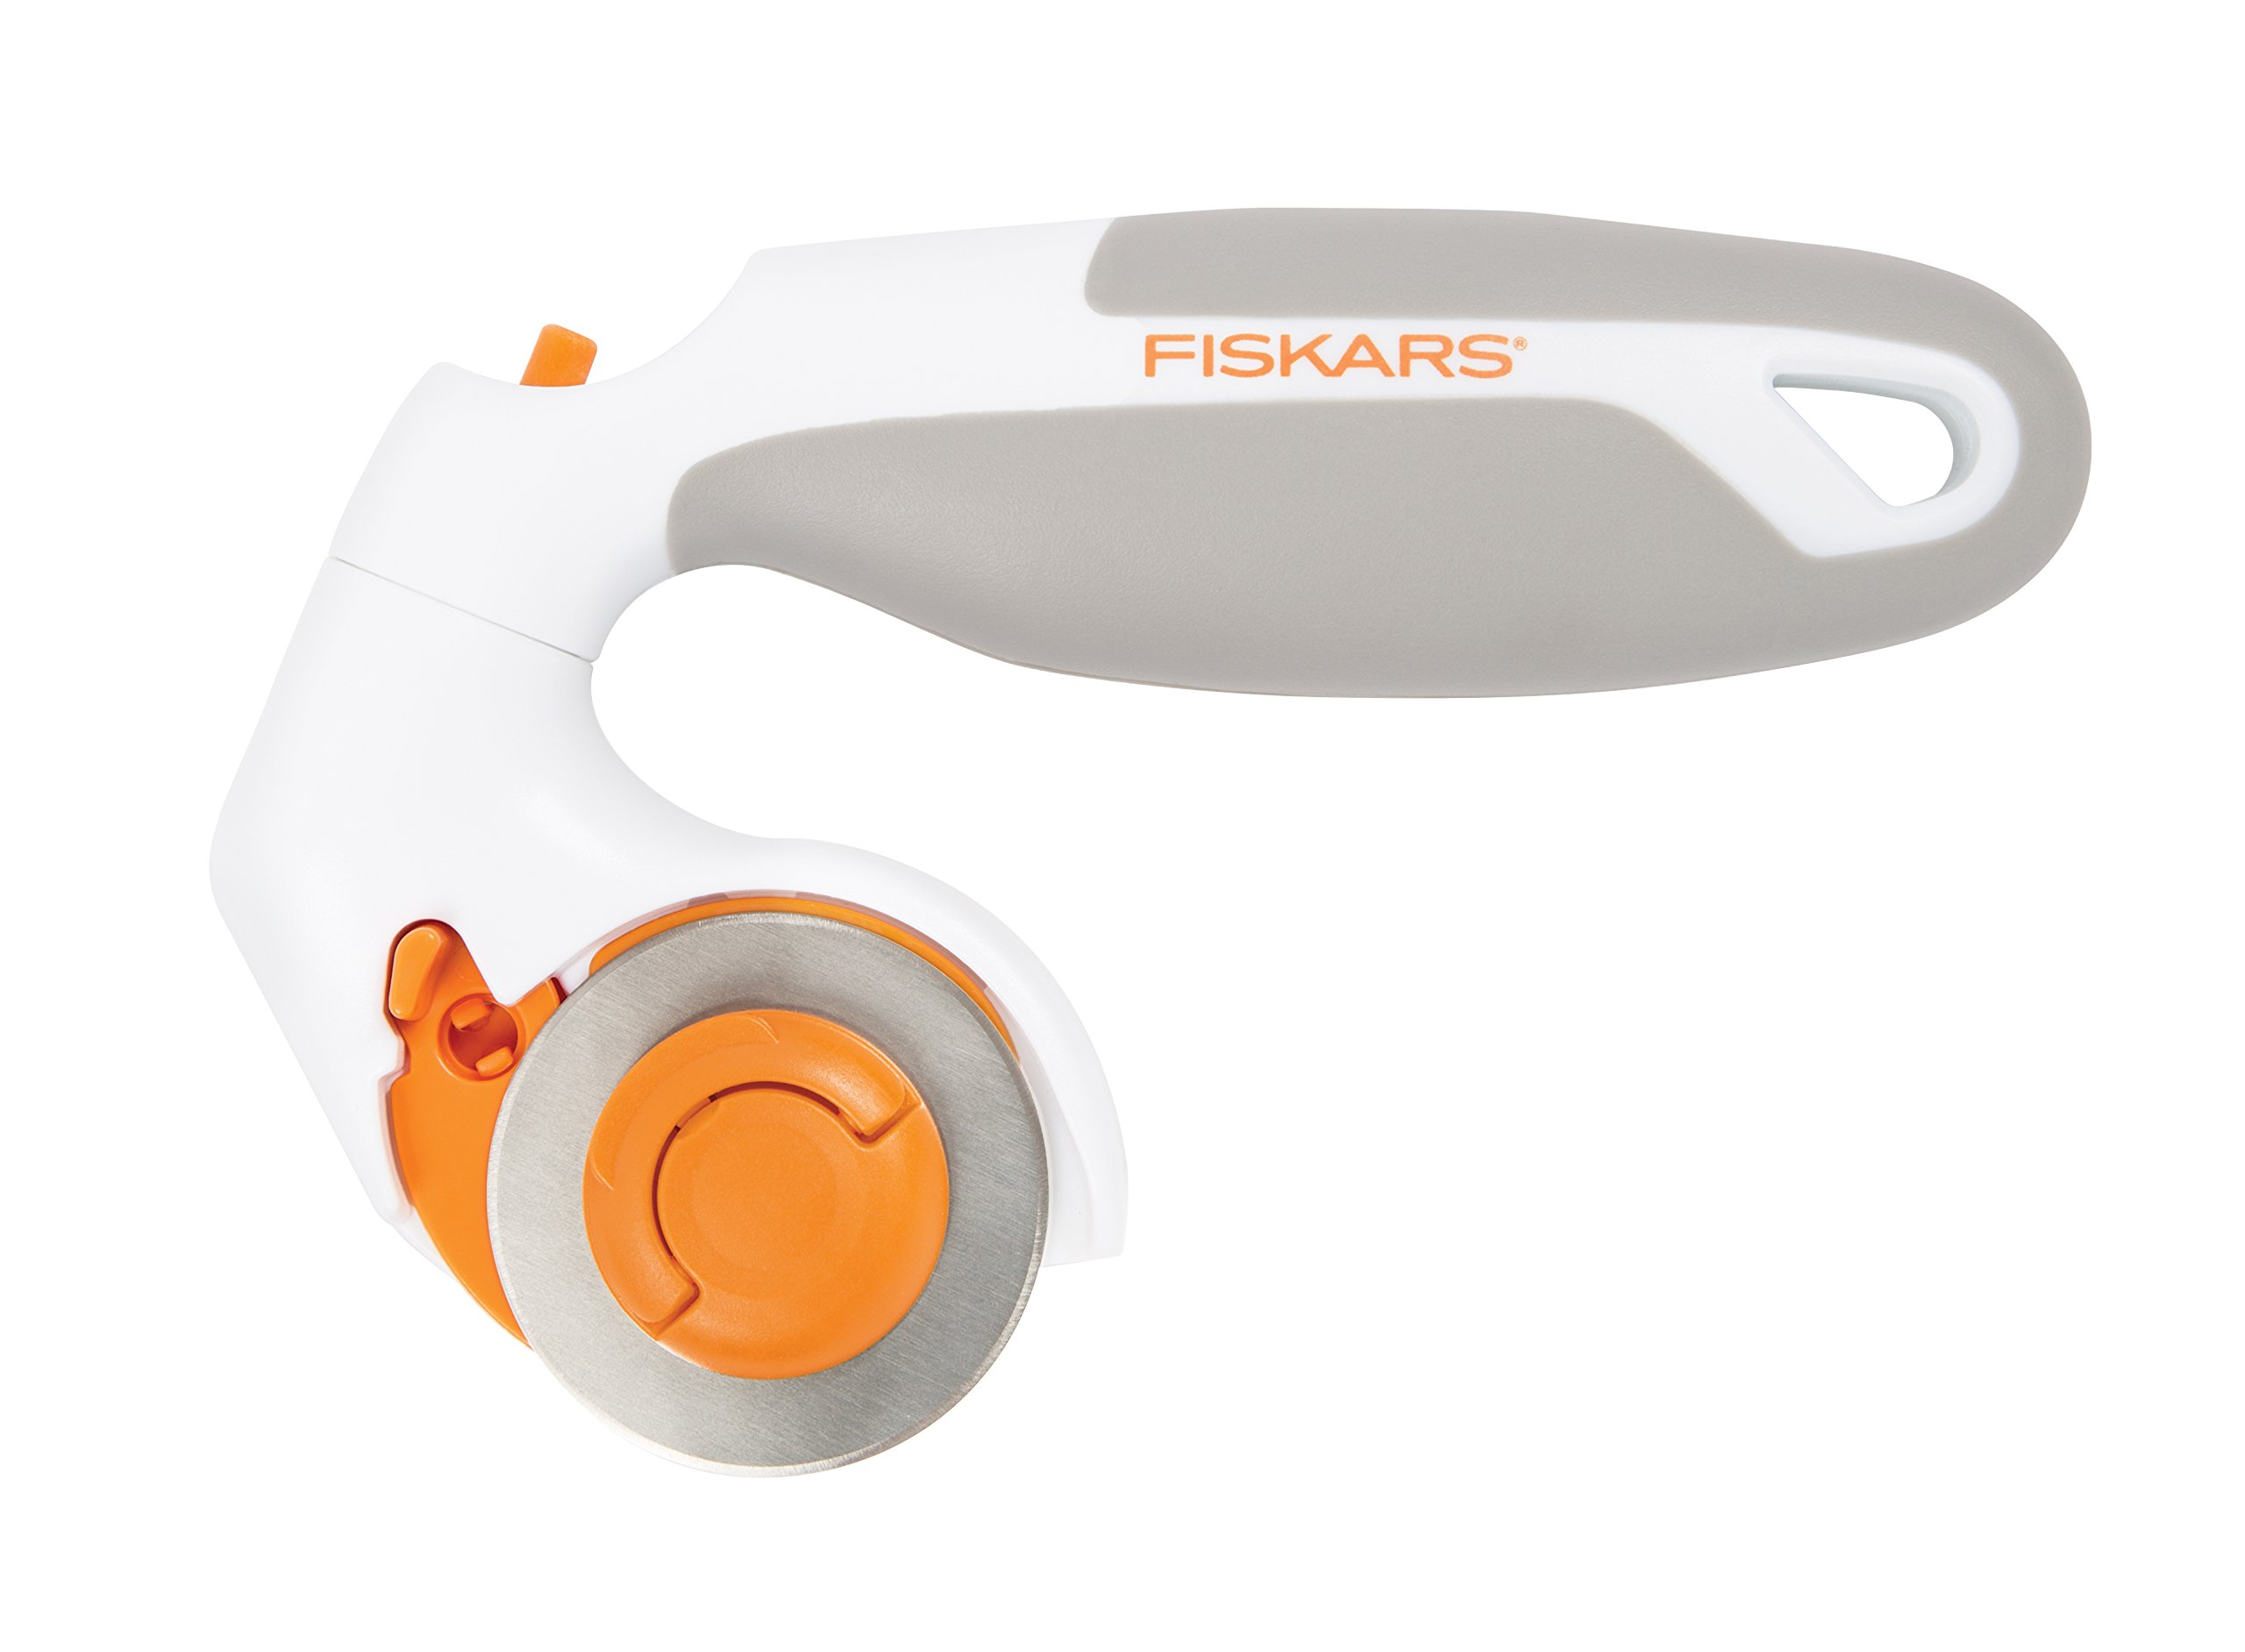 Fiskars 190180-1001 Adjustable Rotary Cutter, 45mm